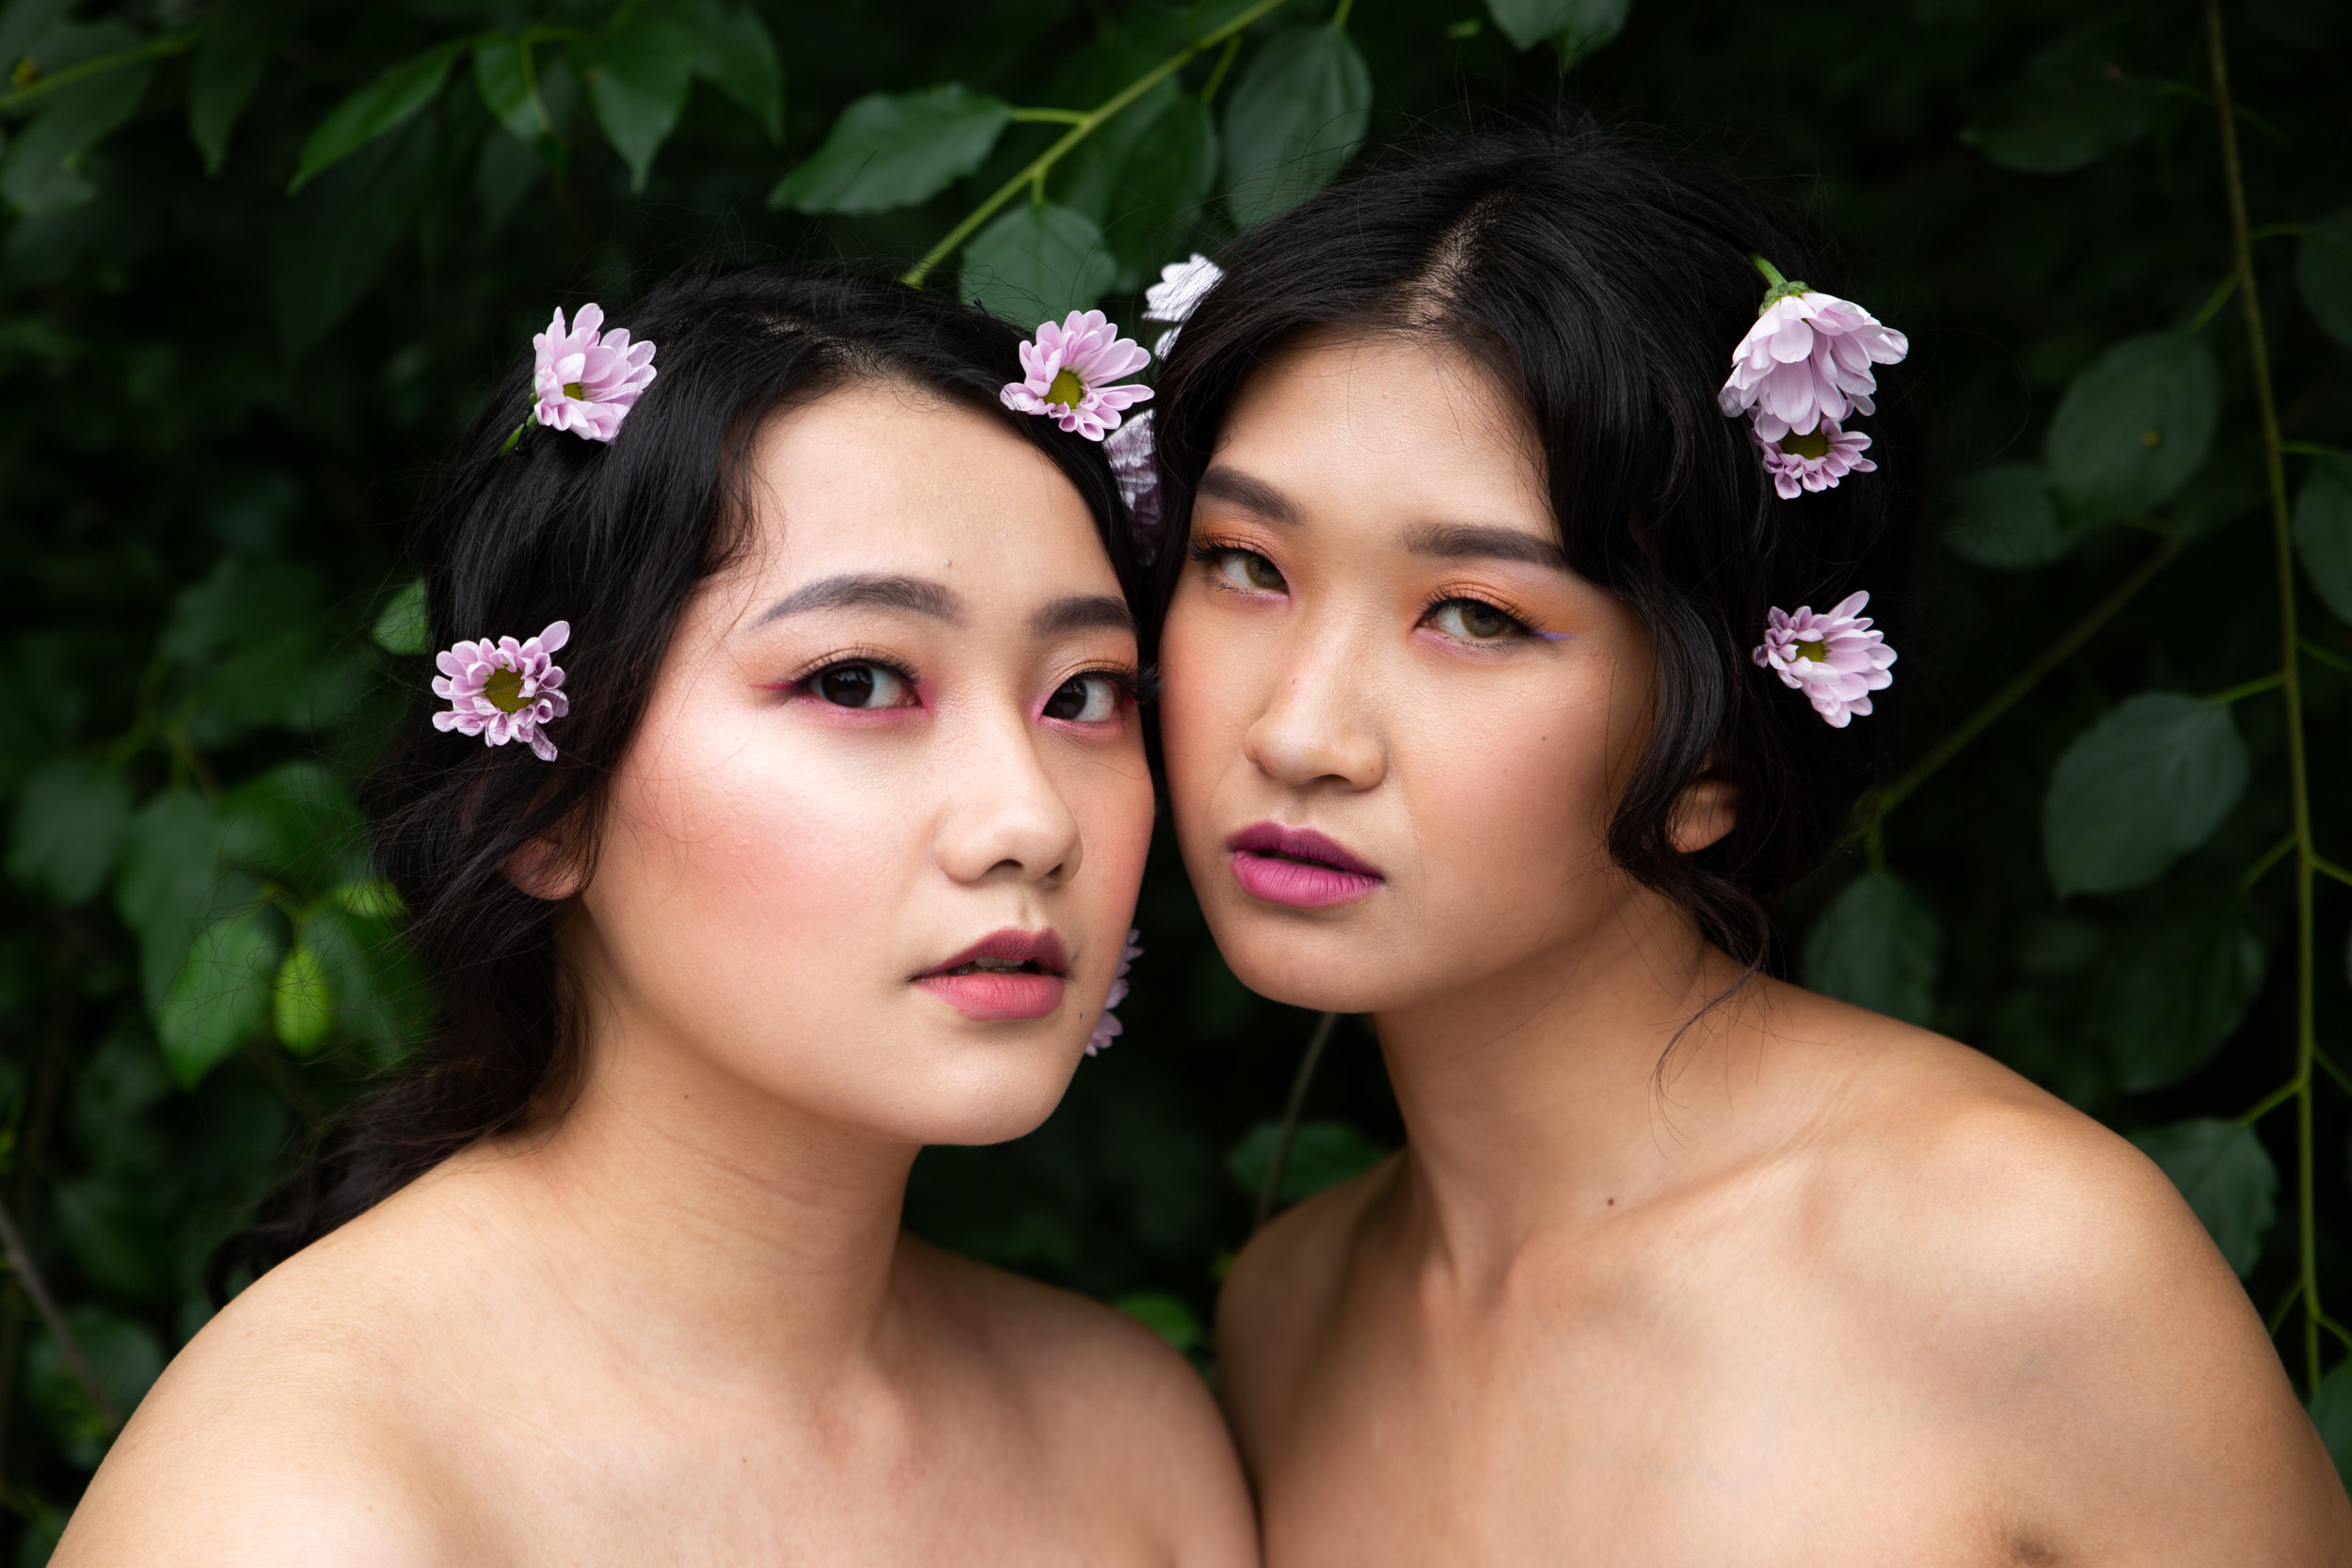 Models: Justina Khang & Sammiee Moua  MUA & Hair: Sammiee Moua  Assistants: Haley Yang, Lena Yang, and Lovesa Xiong